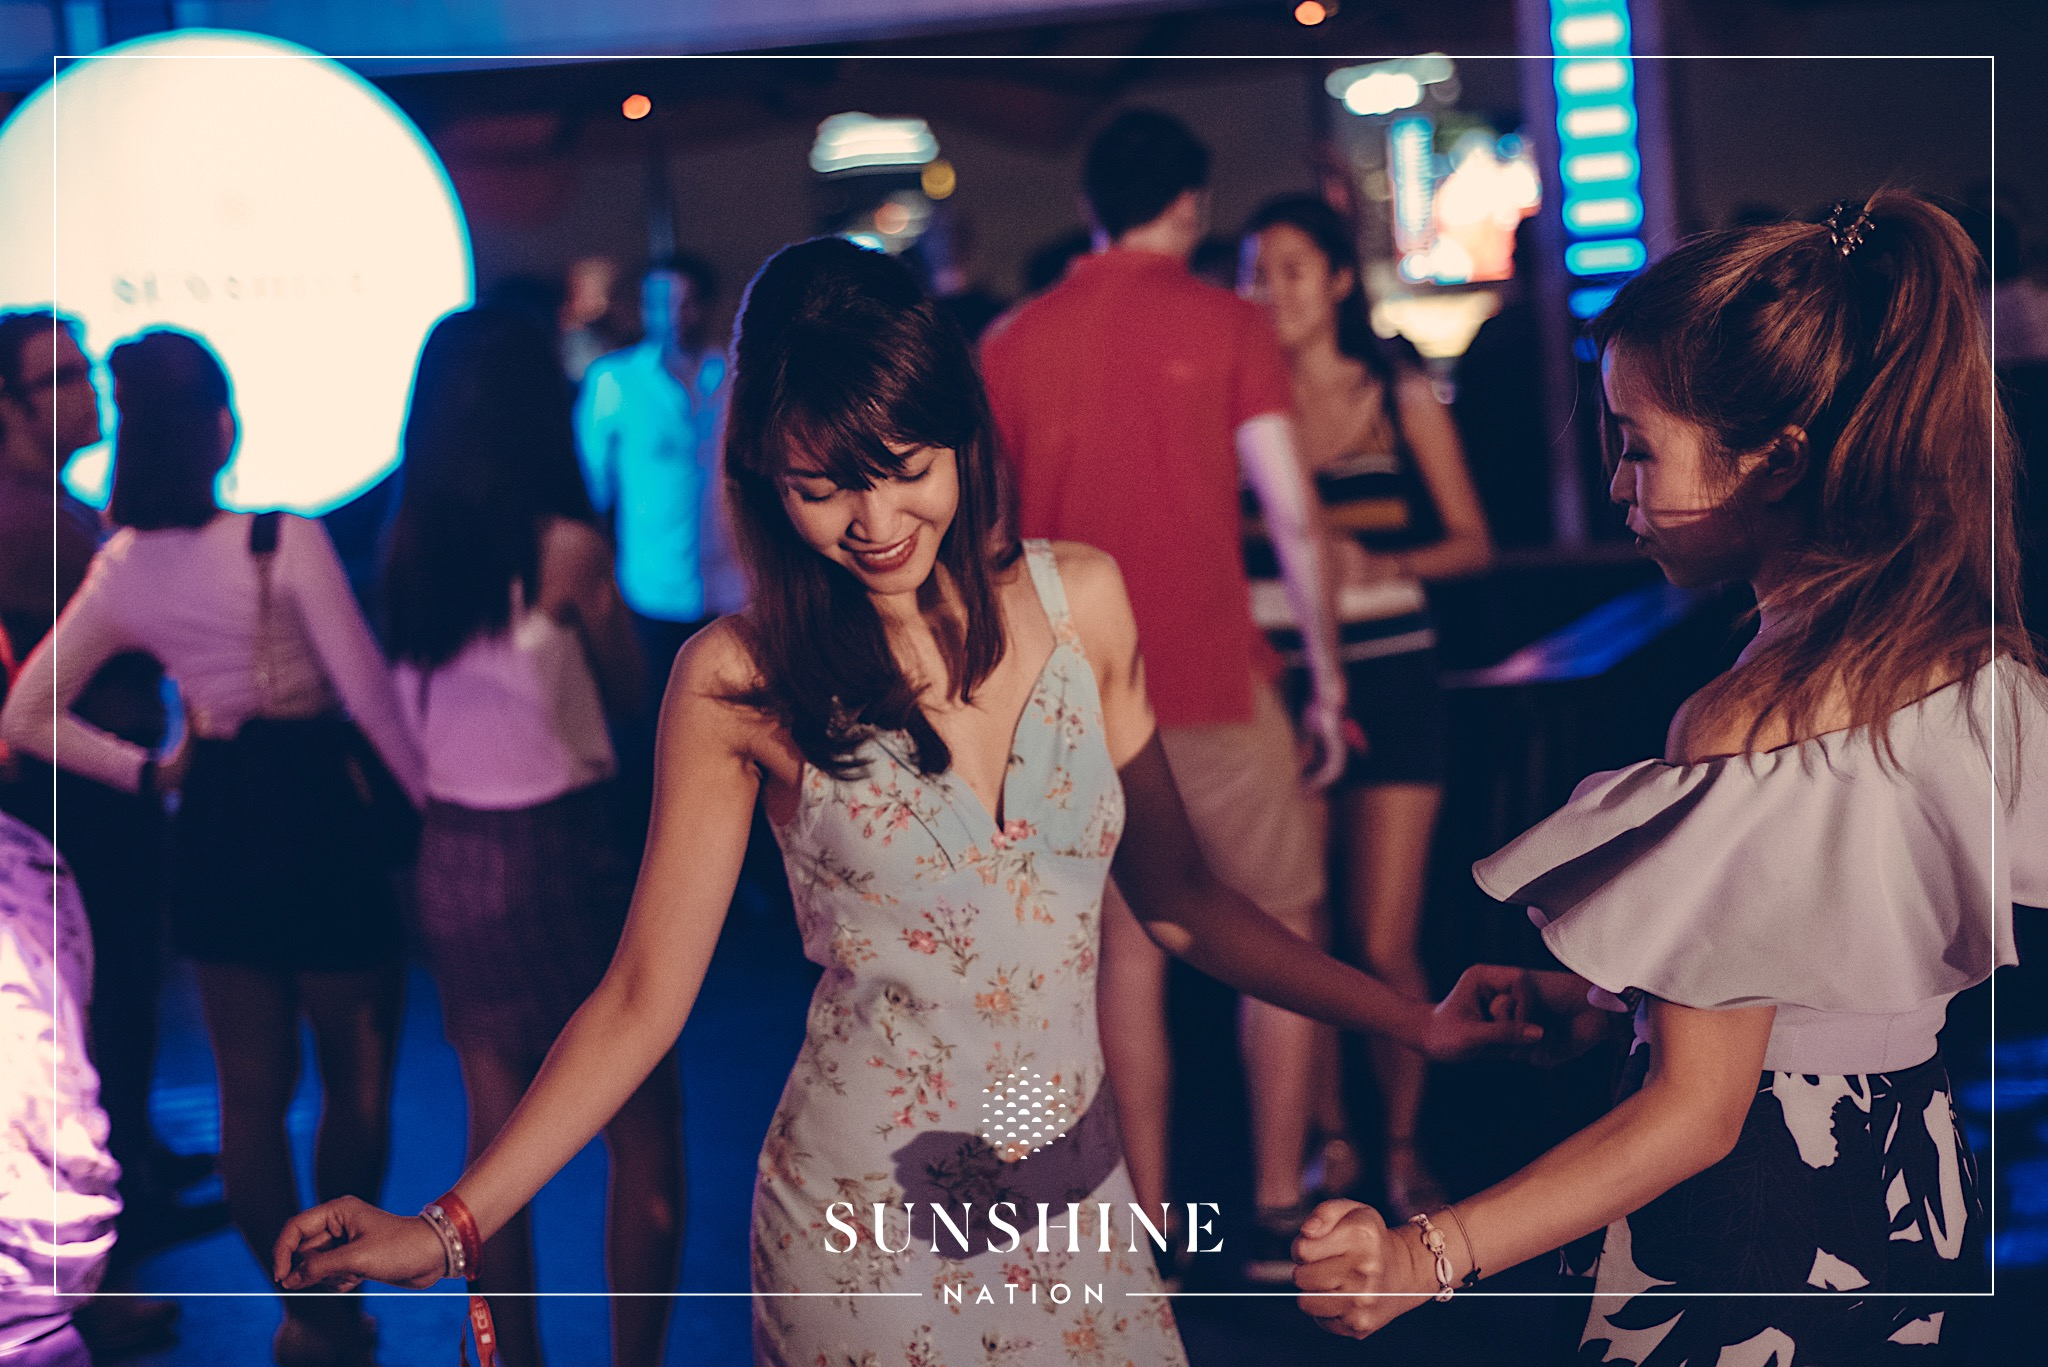 17092017_SunshineNation_Colossal116_Watermarked.jpg